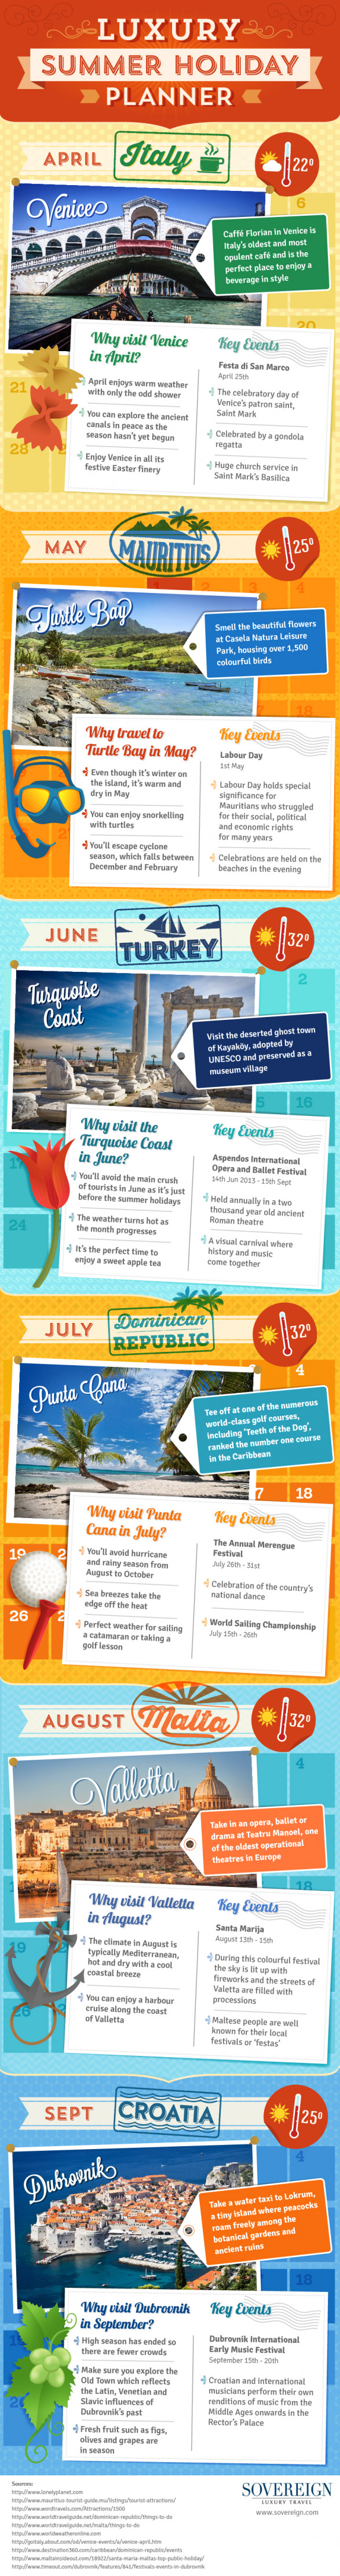 Luxury Summer Holiday Planner